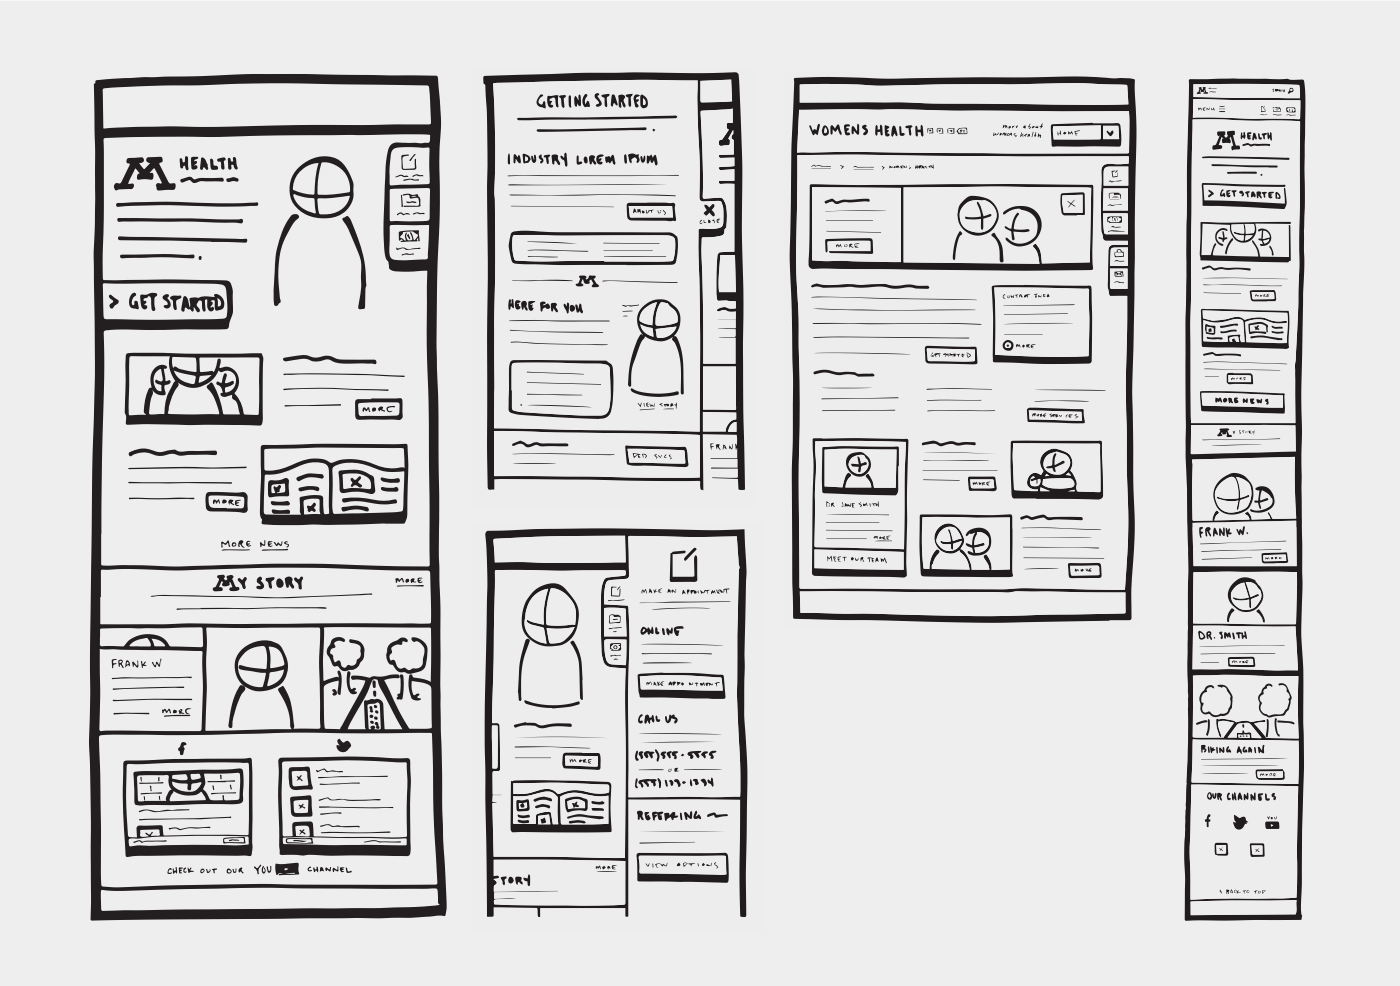 Sample sketch artifacts from the UX process.